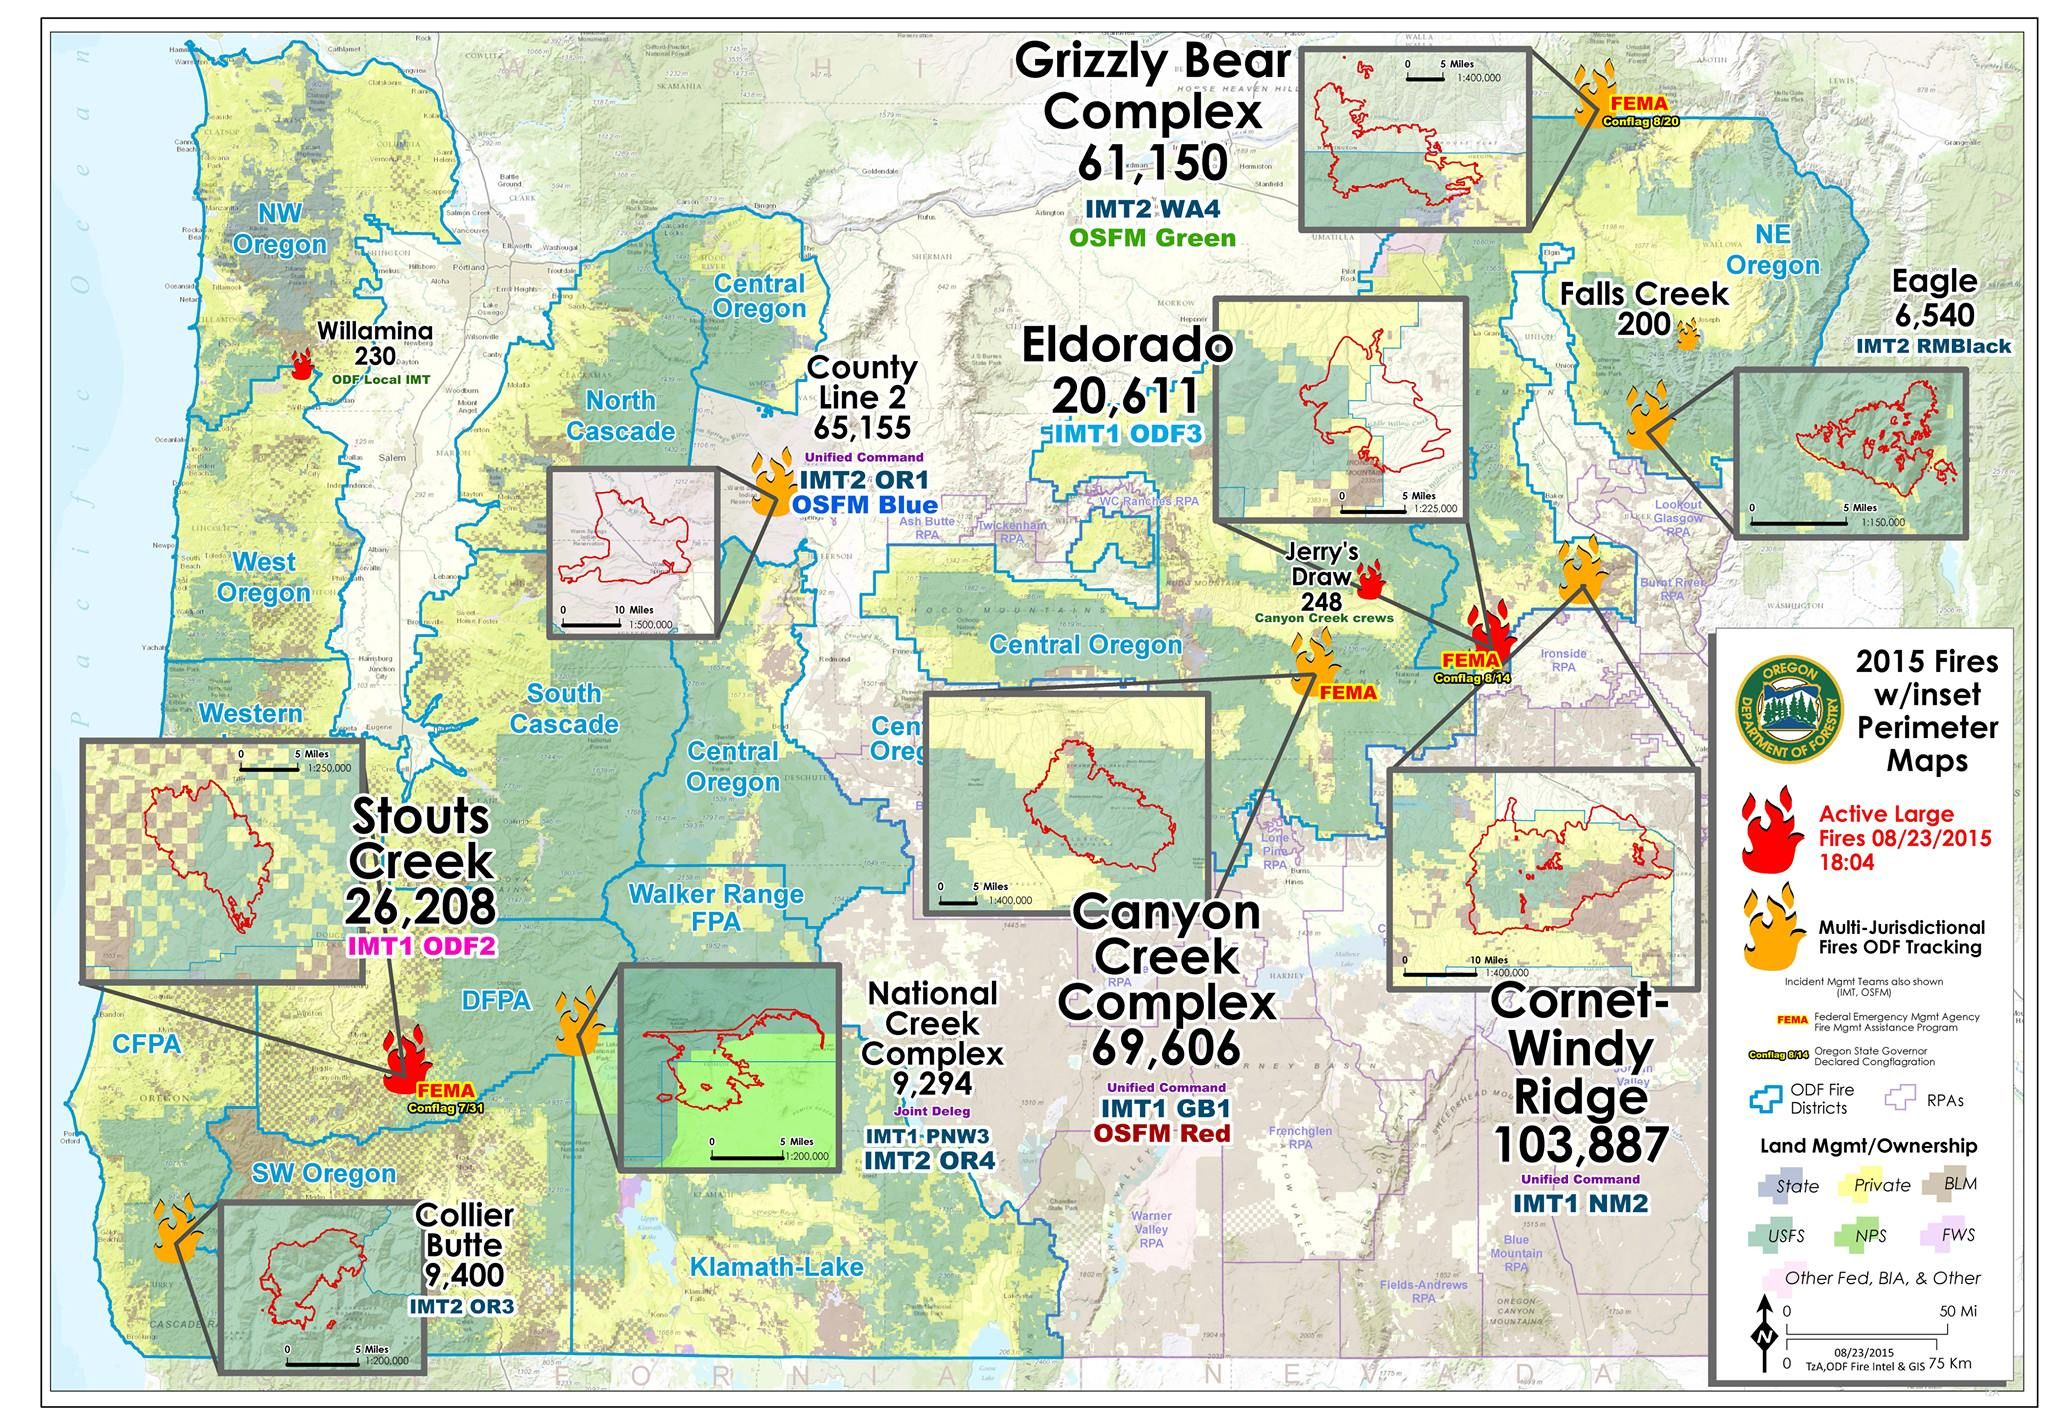 Oregon Department of Forestry Heres todays classic Large Fire